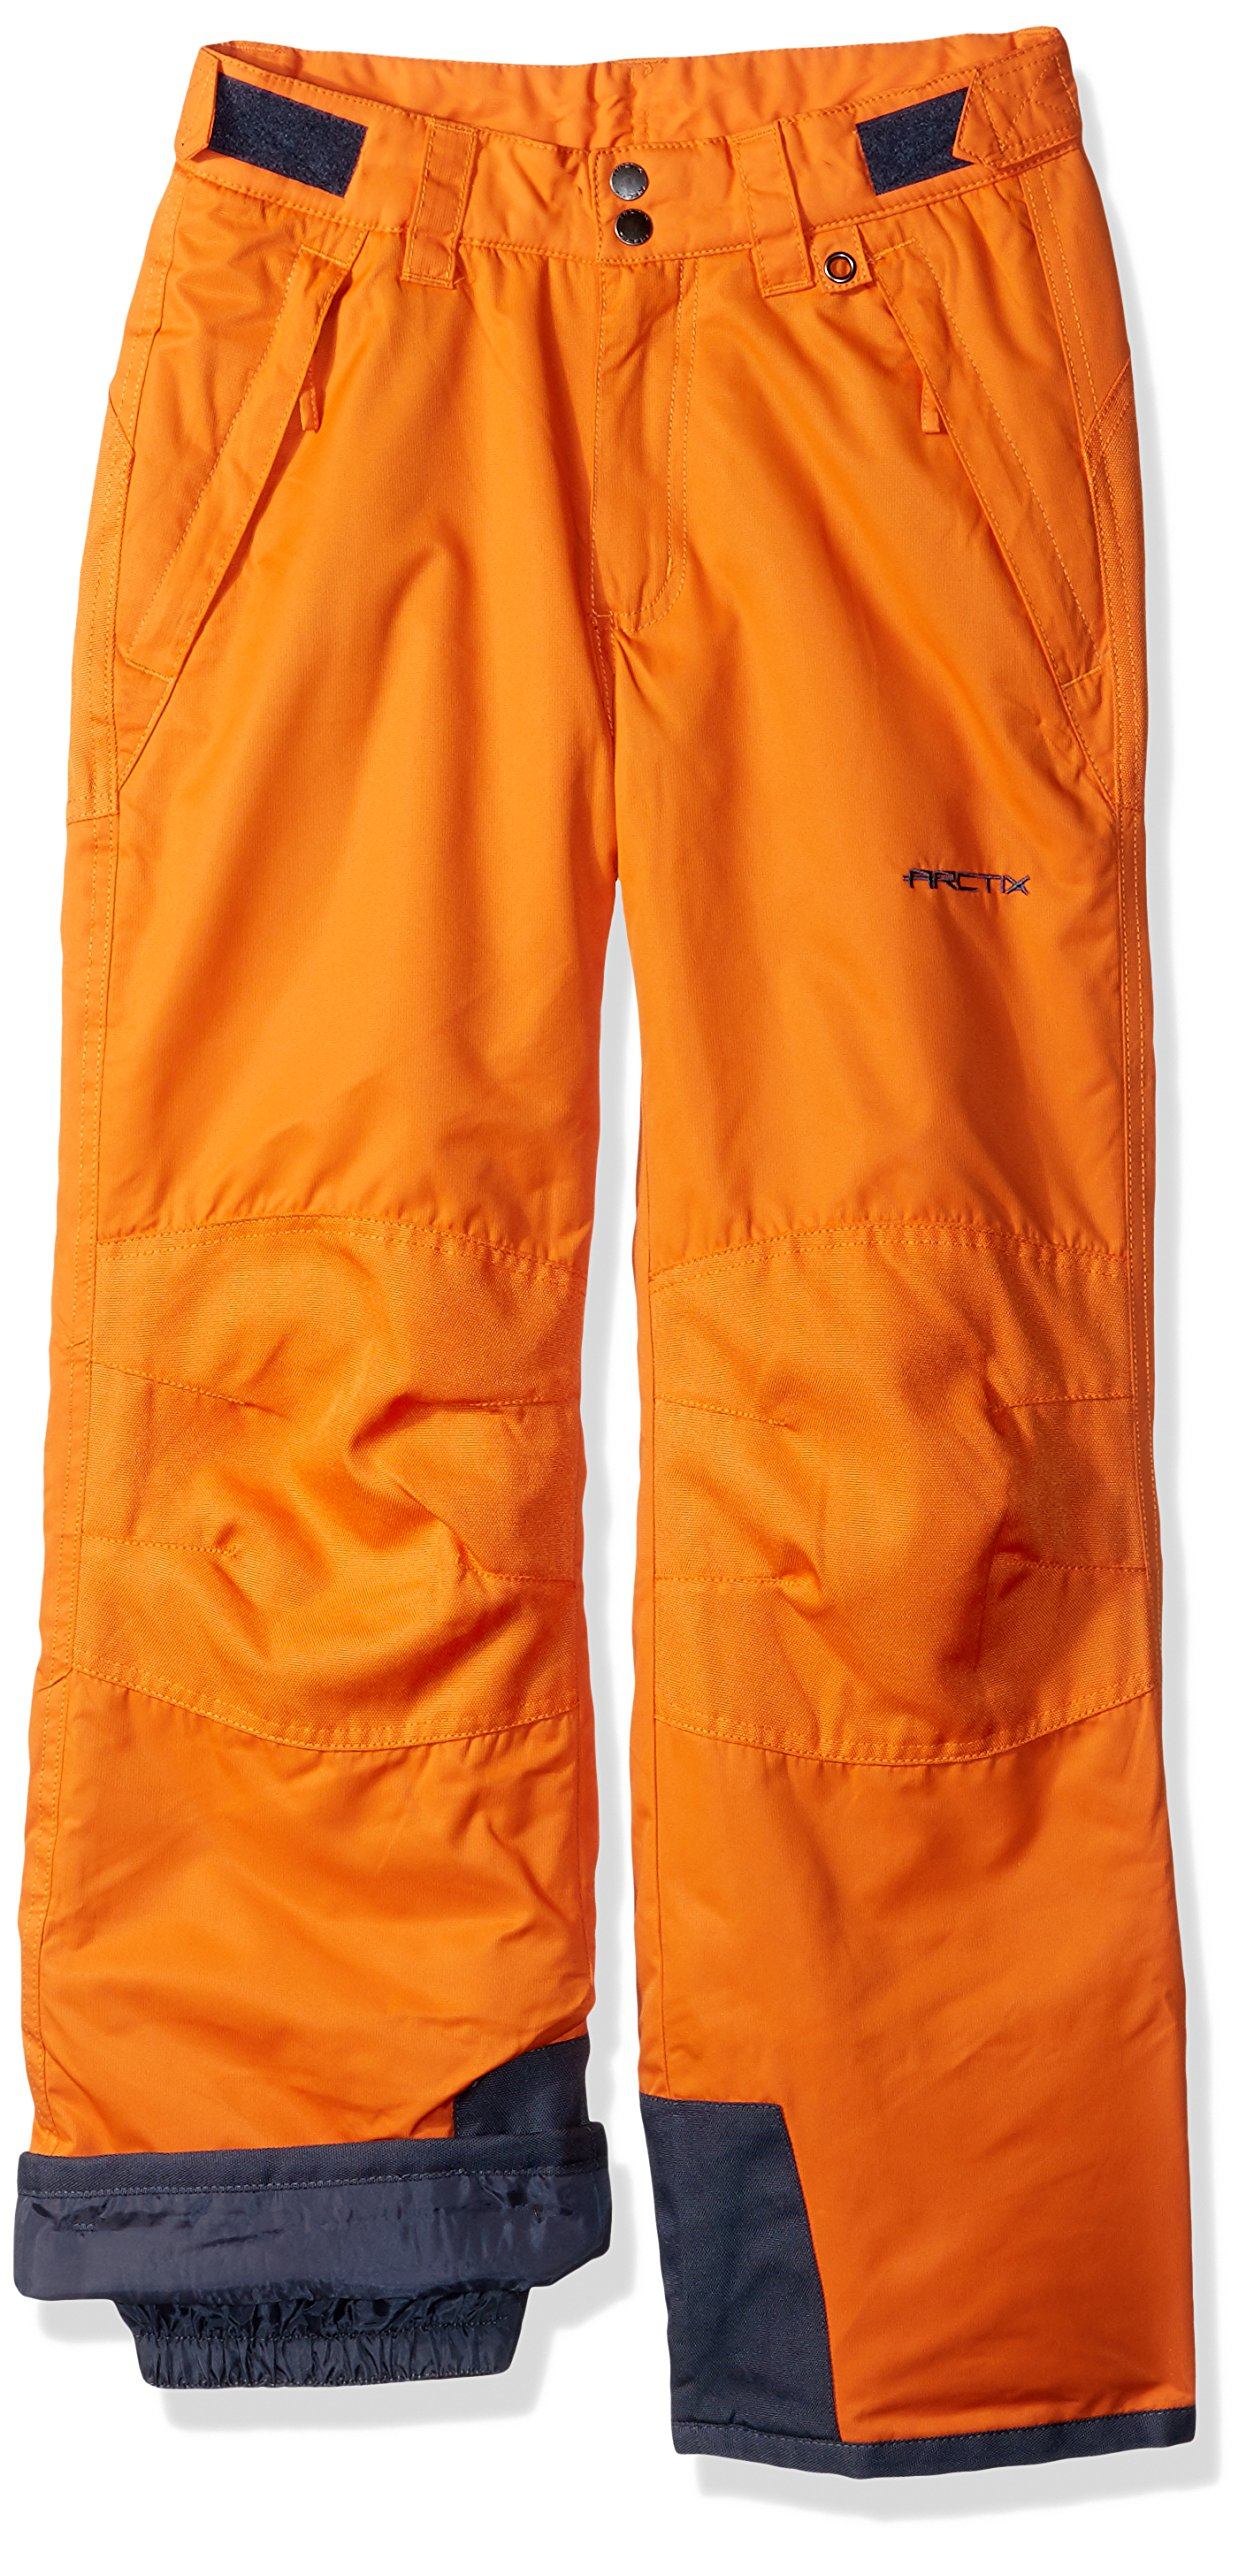 Arctix Youth Snow Pants with Reinforced Knee and Seat, X-Small, Burnt Orange